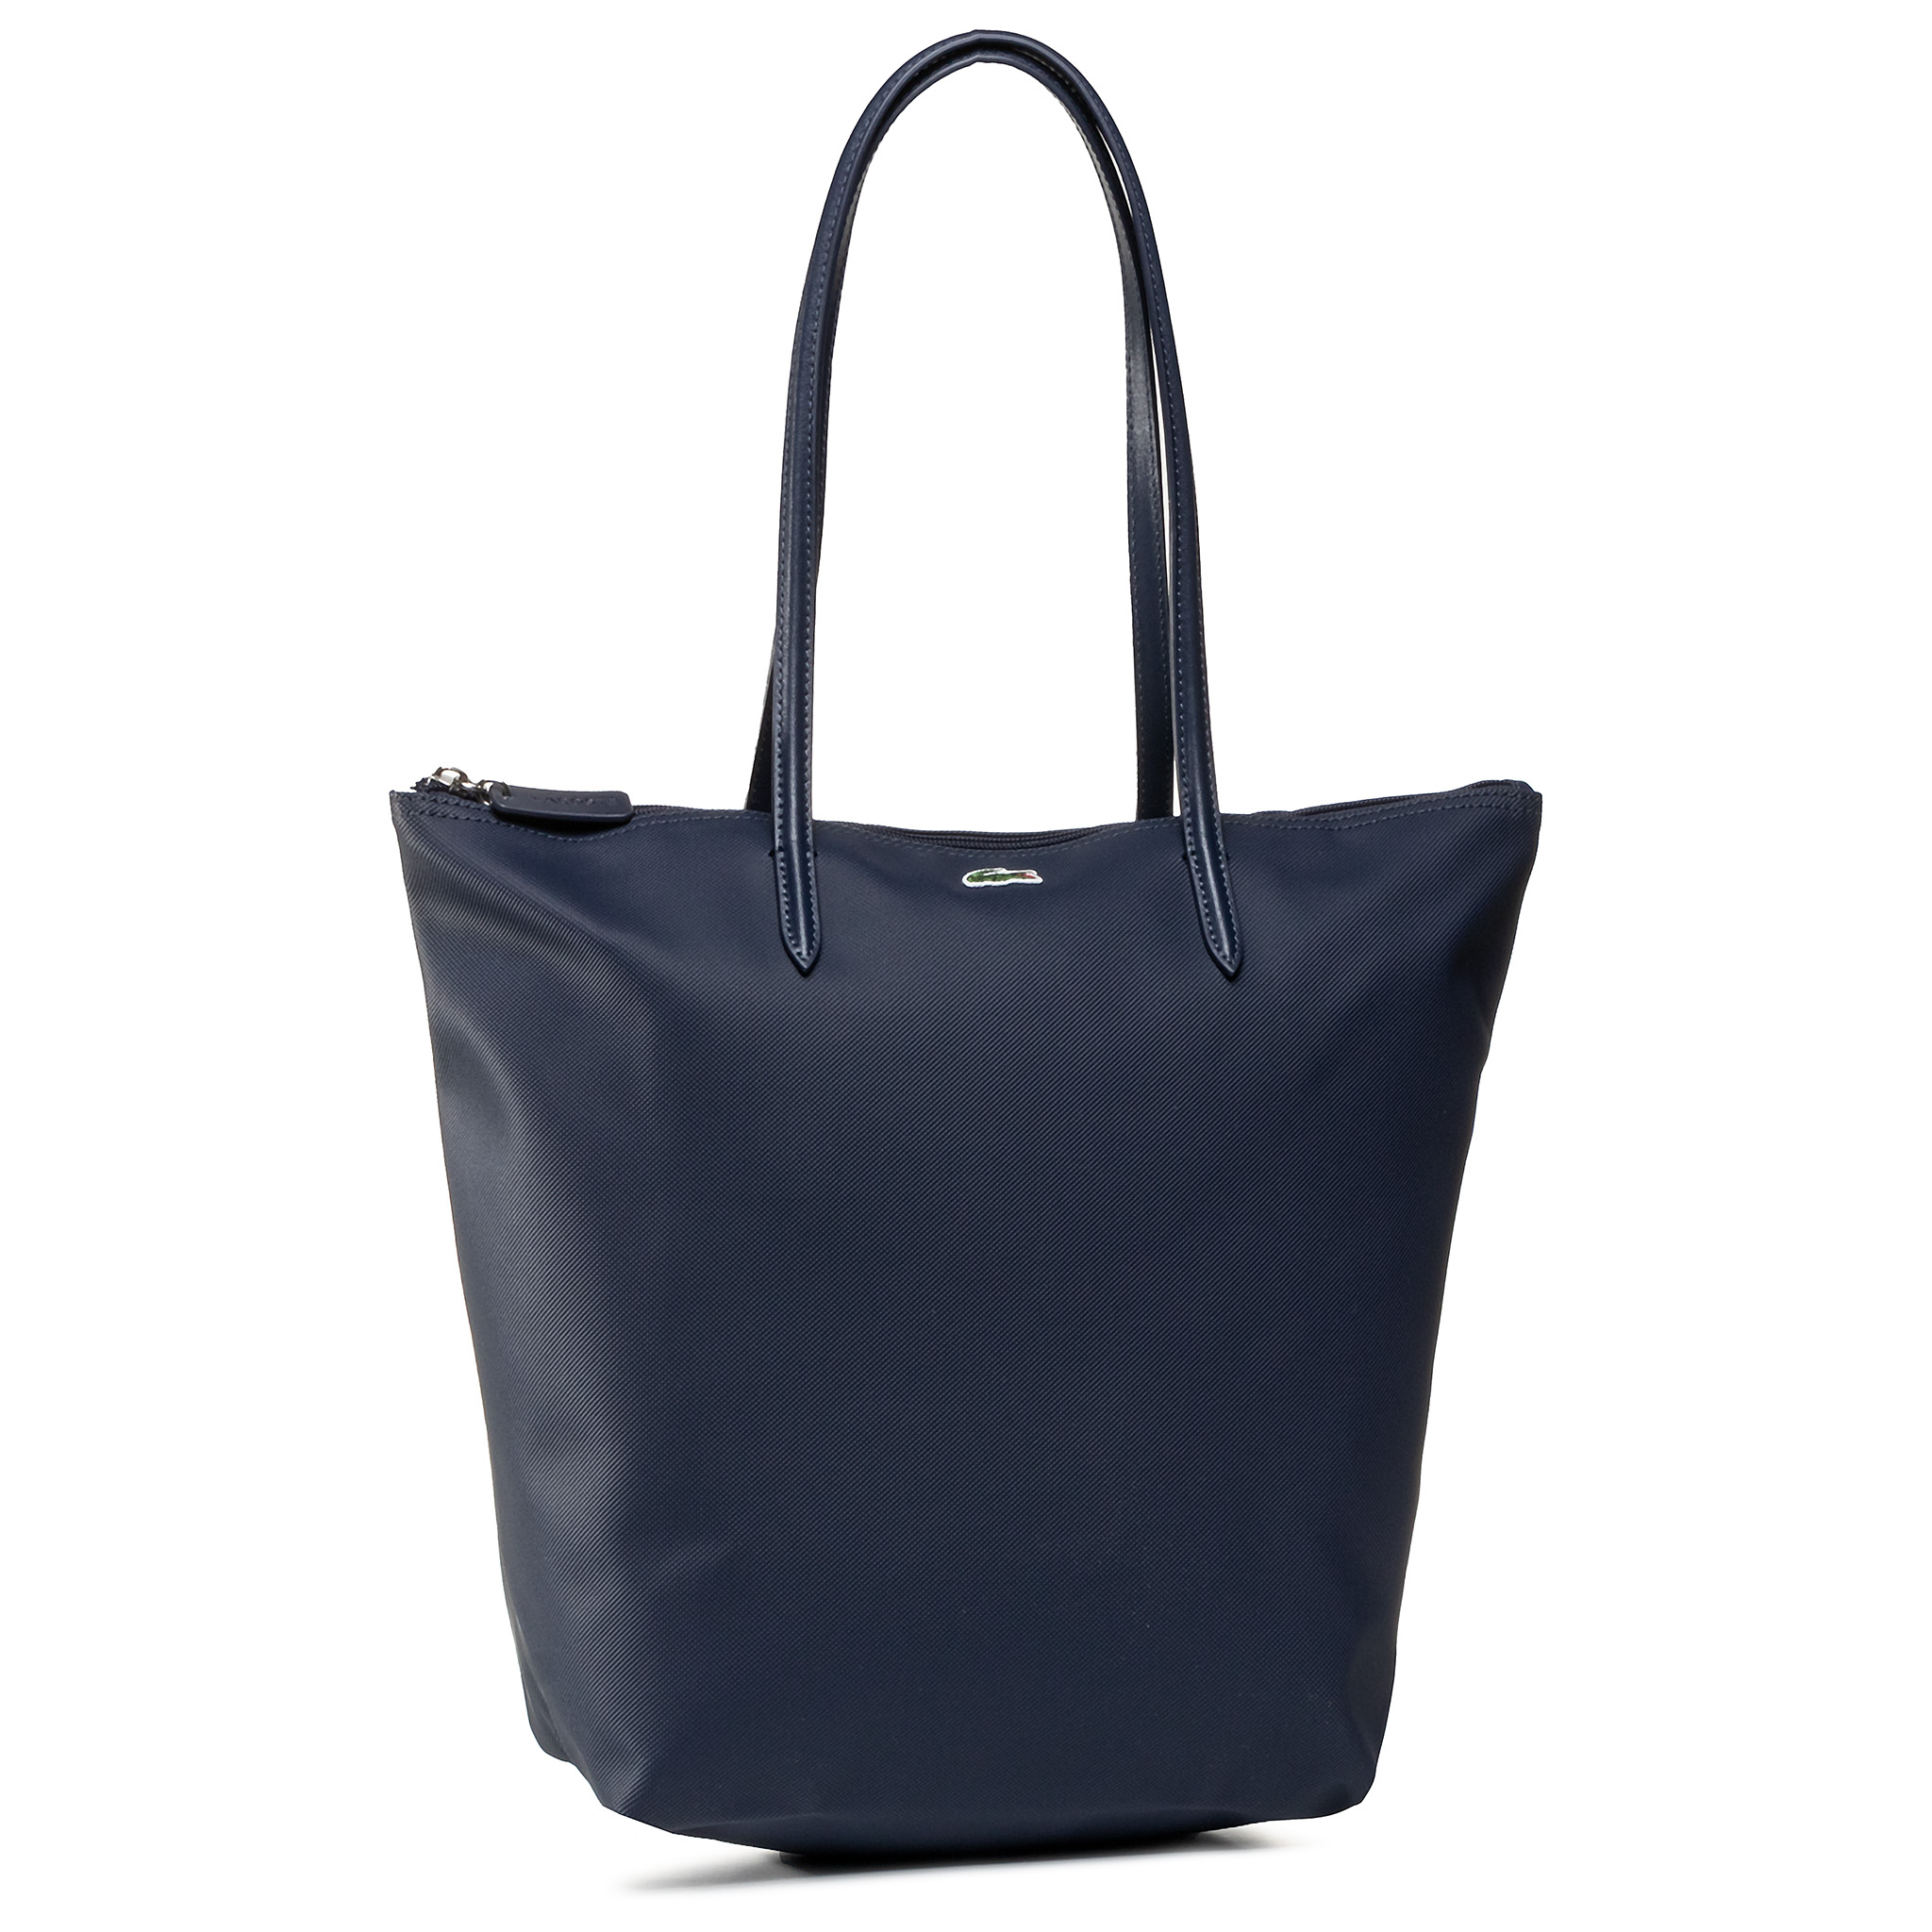 Geantă LACOSTE - Vertical Shopping Bag NF1890PO Navy 141